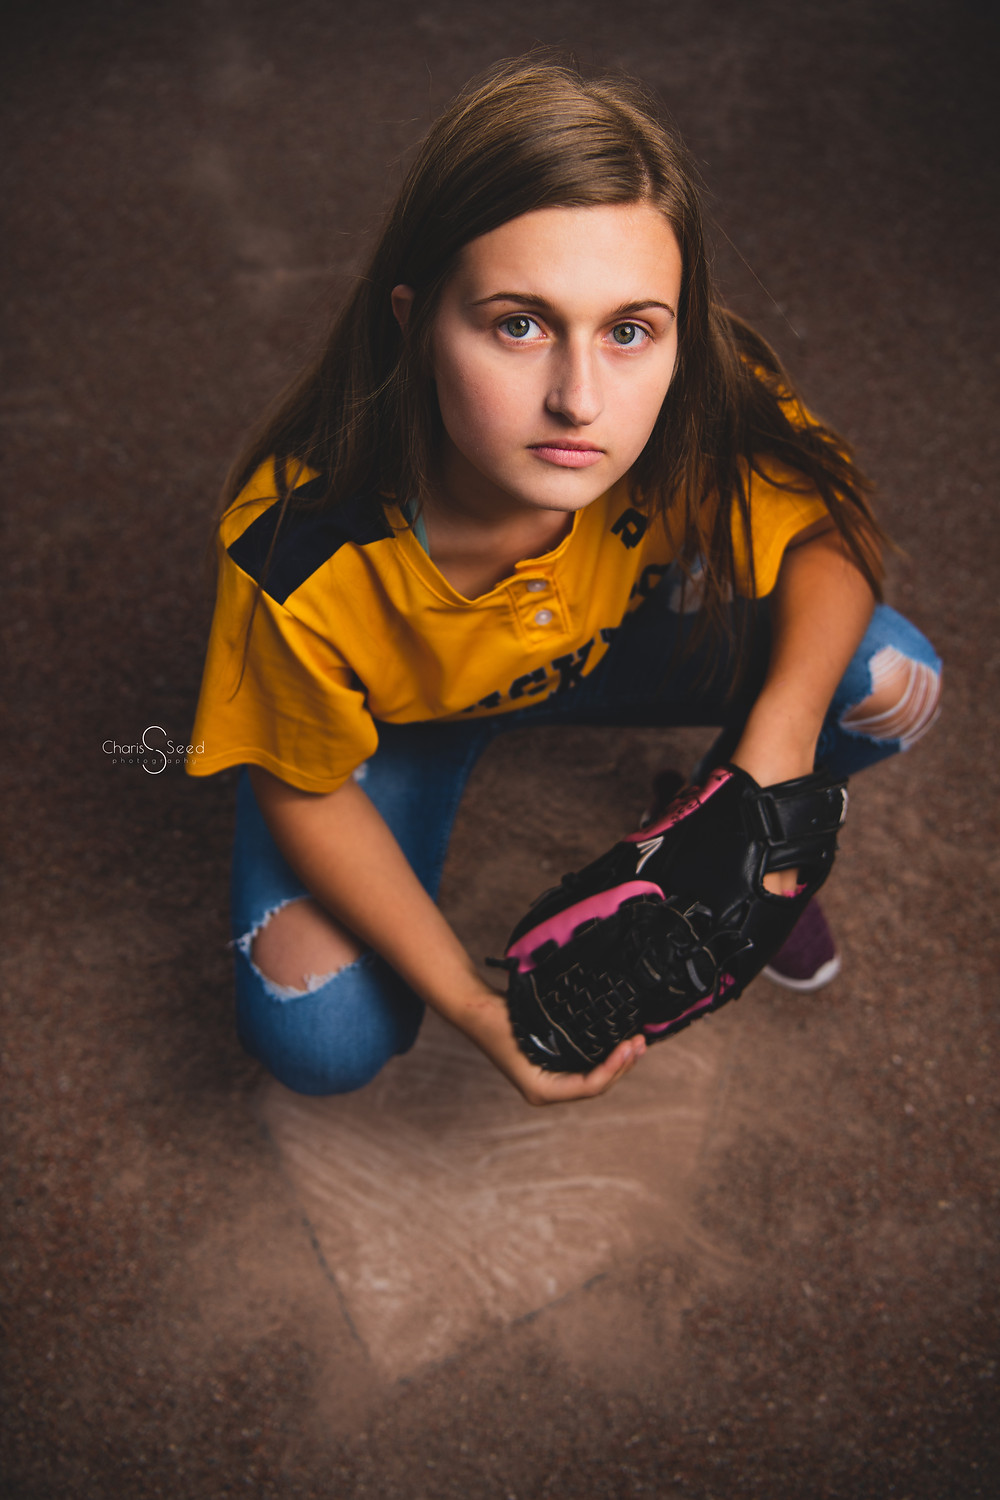 softball girl senior picture with glove